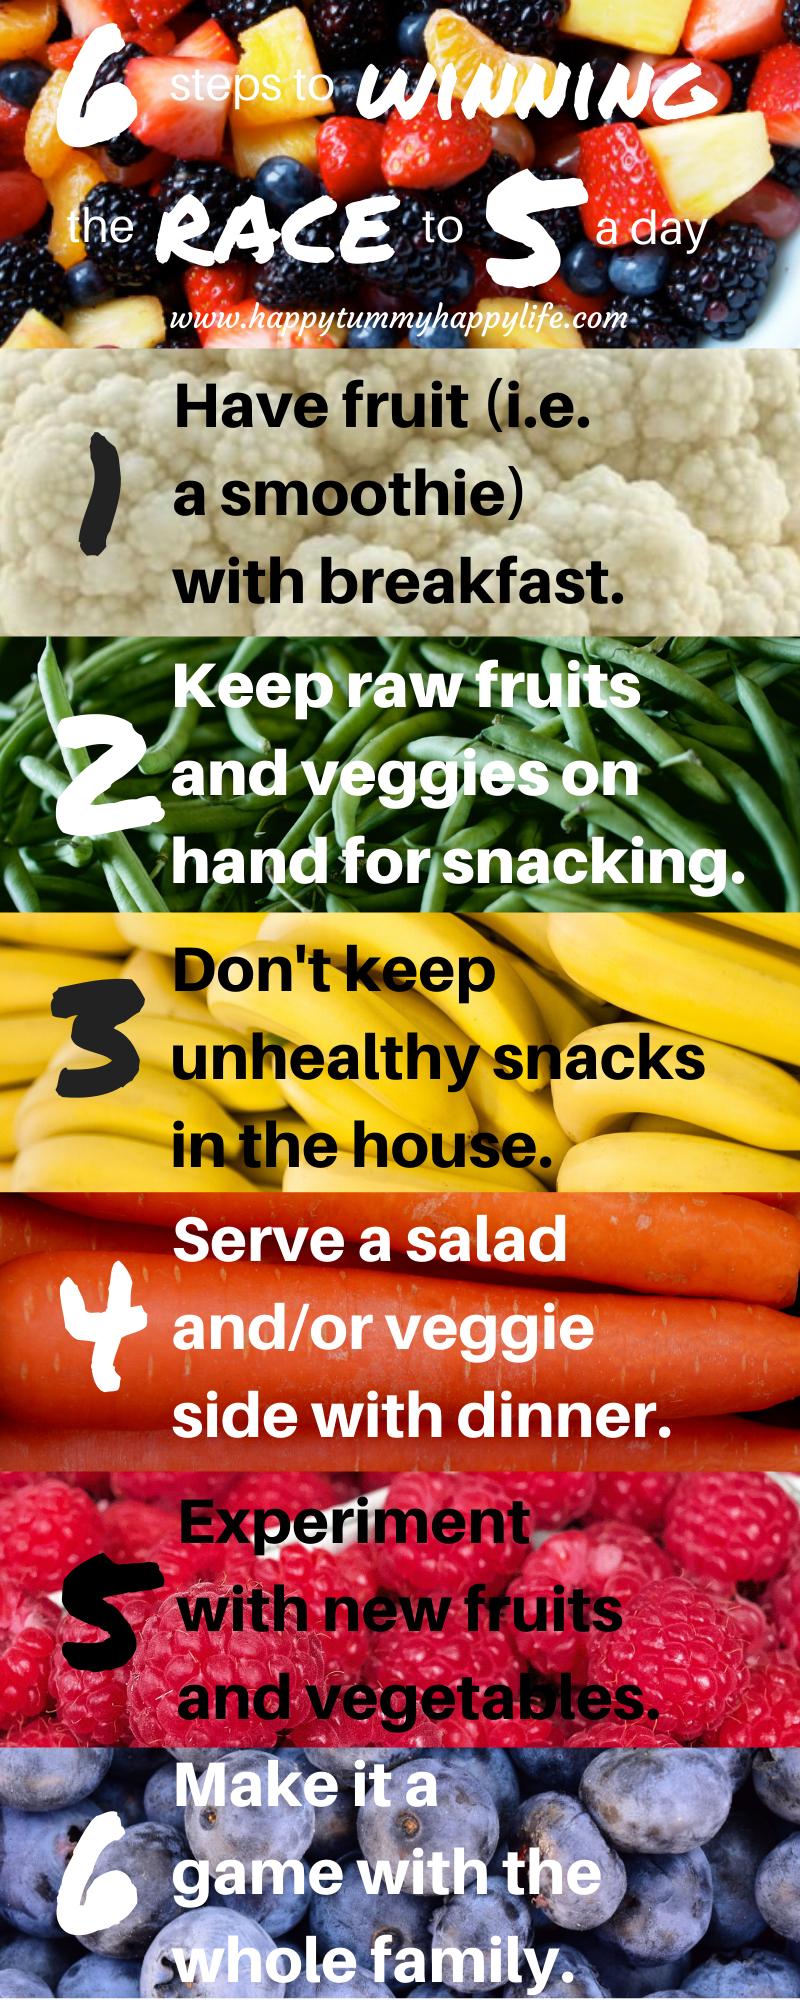 5 a day tips